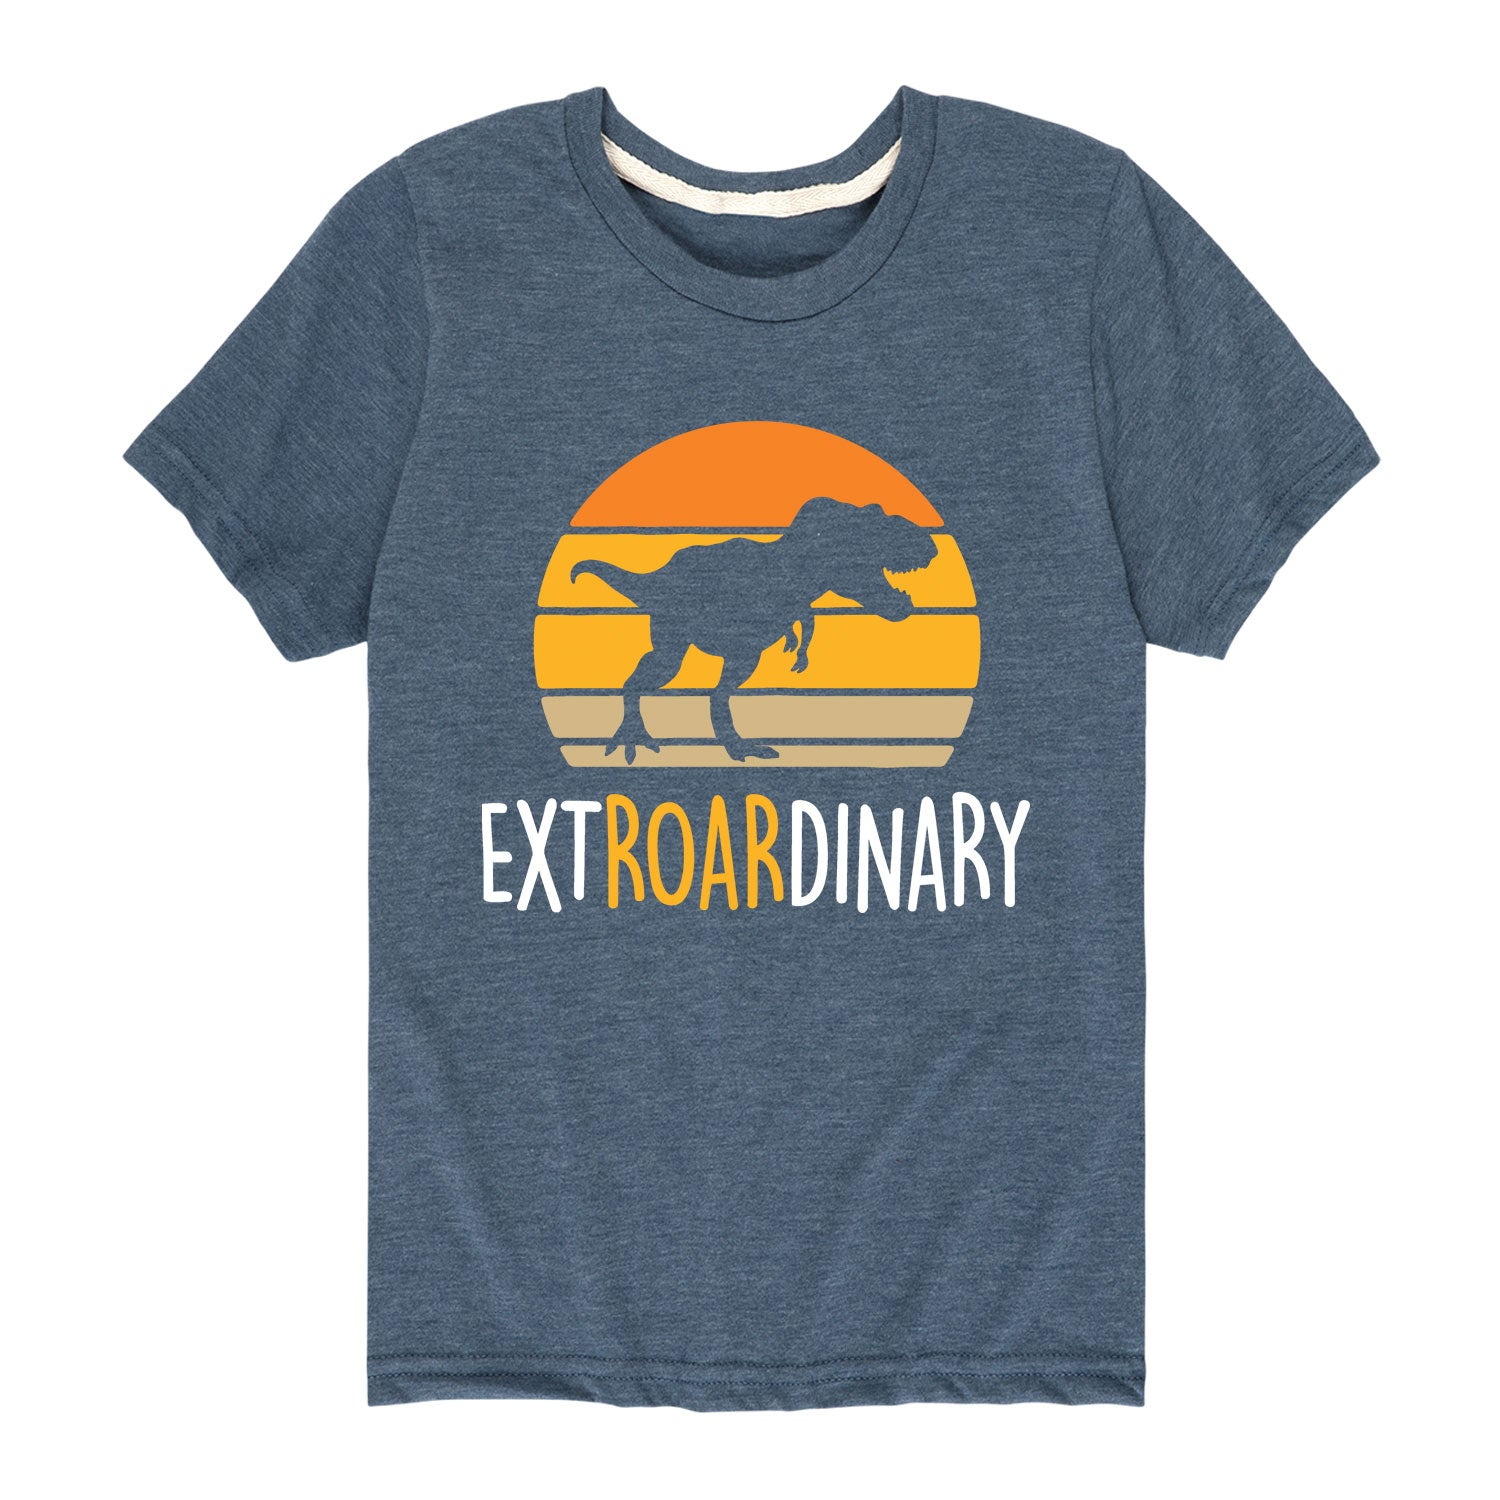 Extroardinary - Youth & Toddler Short Sleeve T-Shirt